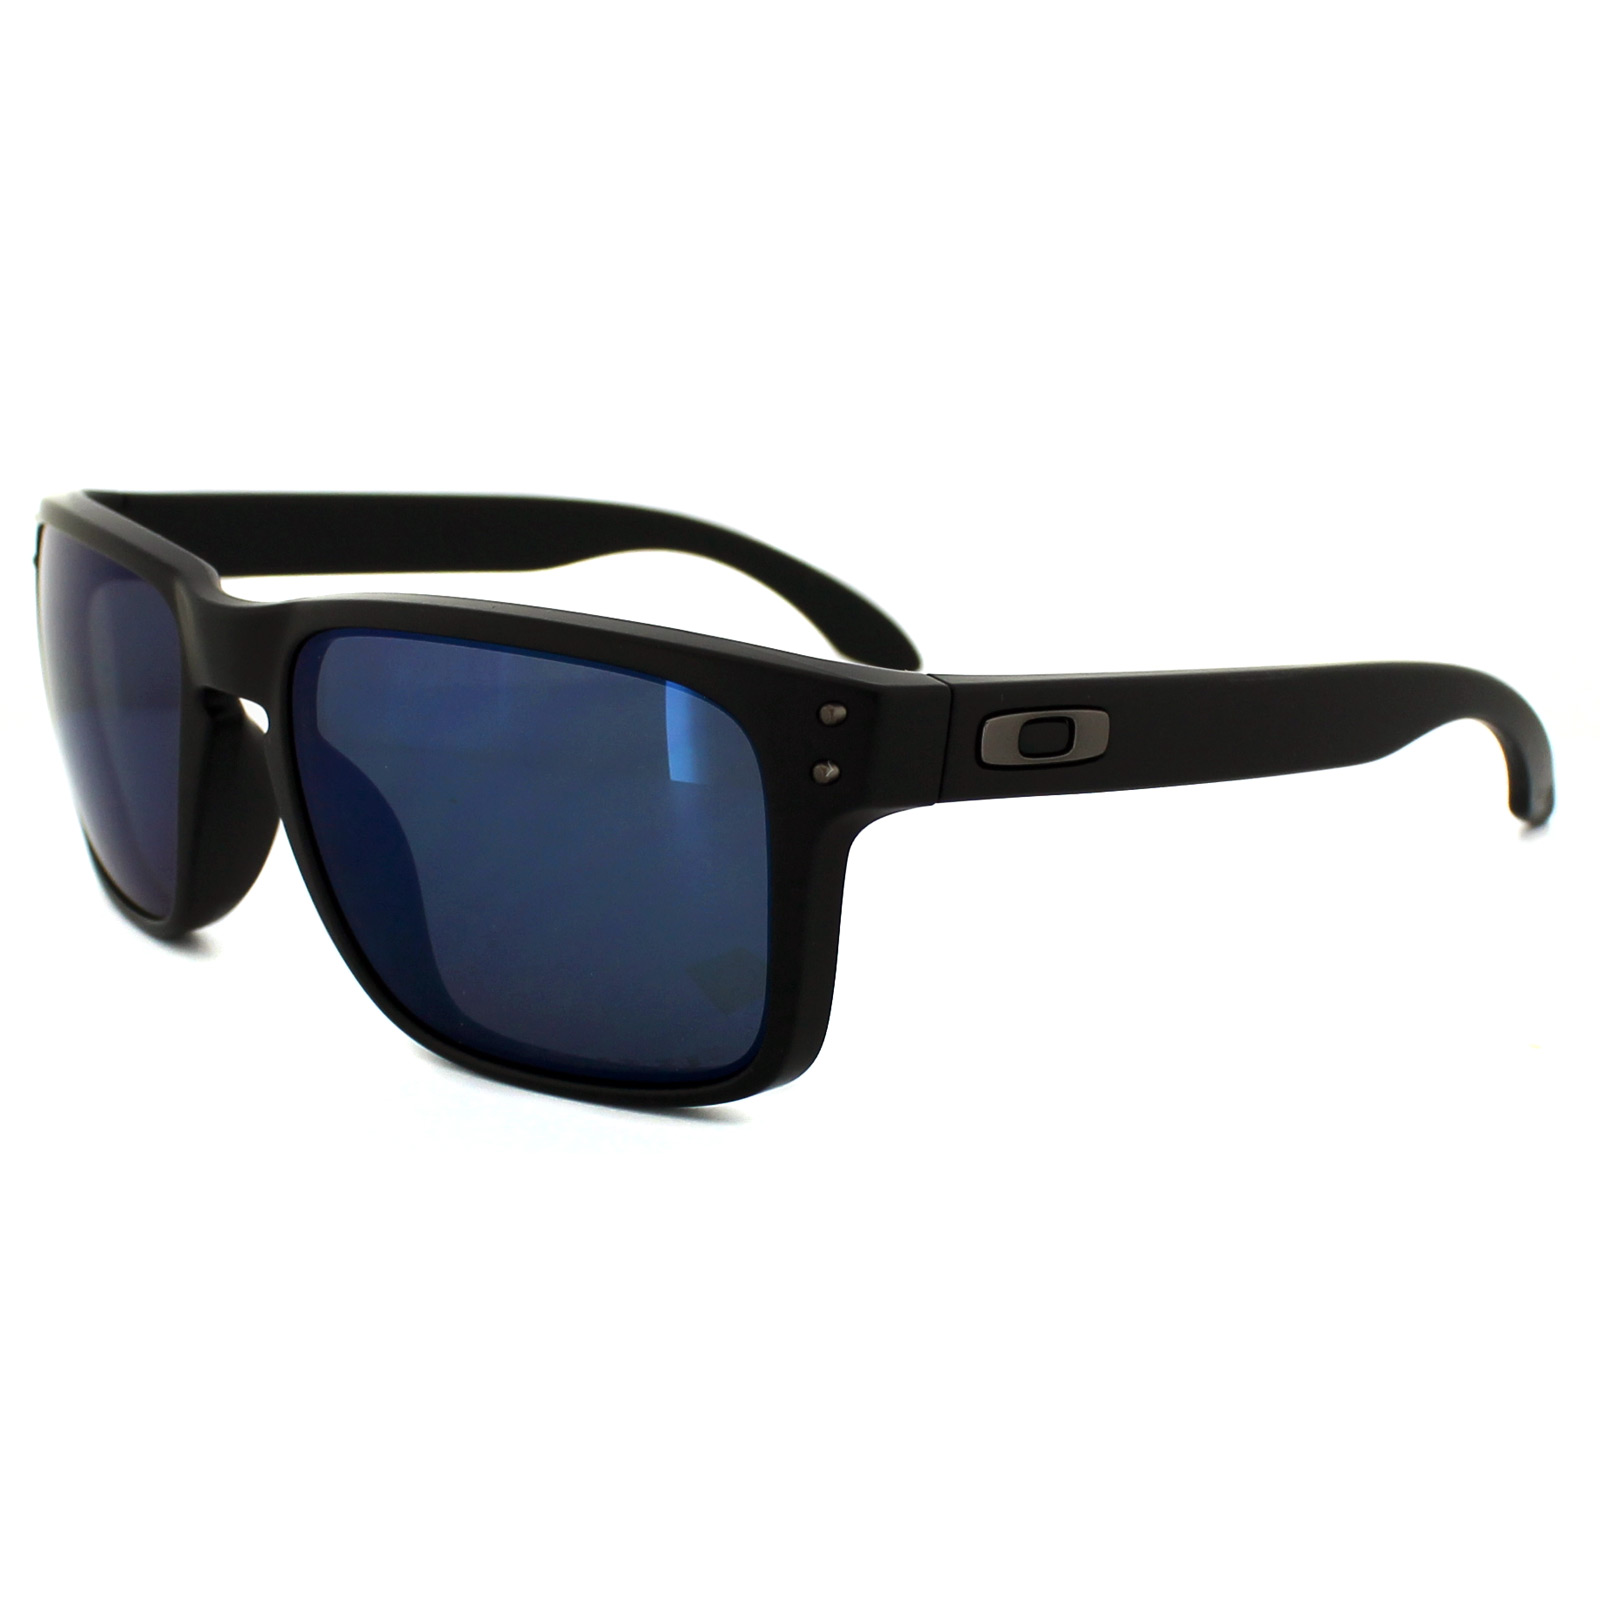 bf06431a82 Details about Oakley Sunglasses Holbrook OO9102-52 Matte Black Ice Iridium  Polarized